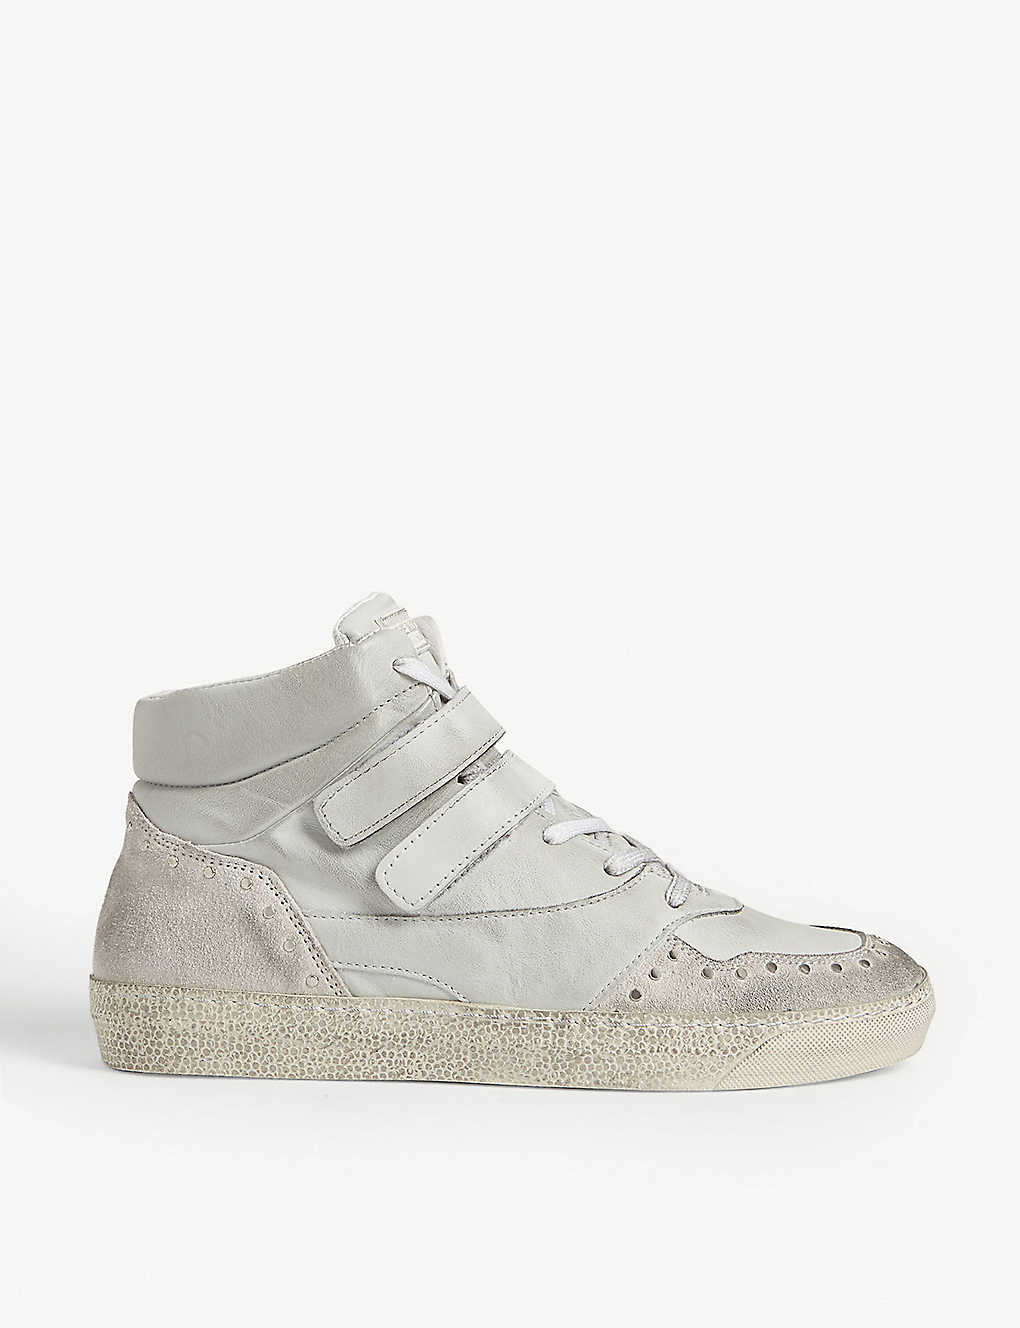 THE KOOPLES: Distressed leather and suede high-top trainers